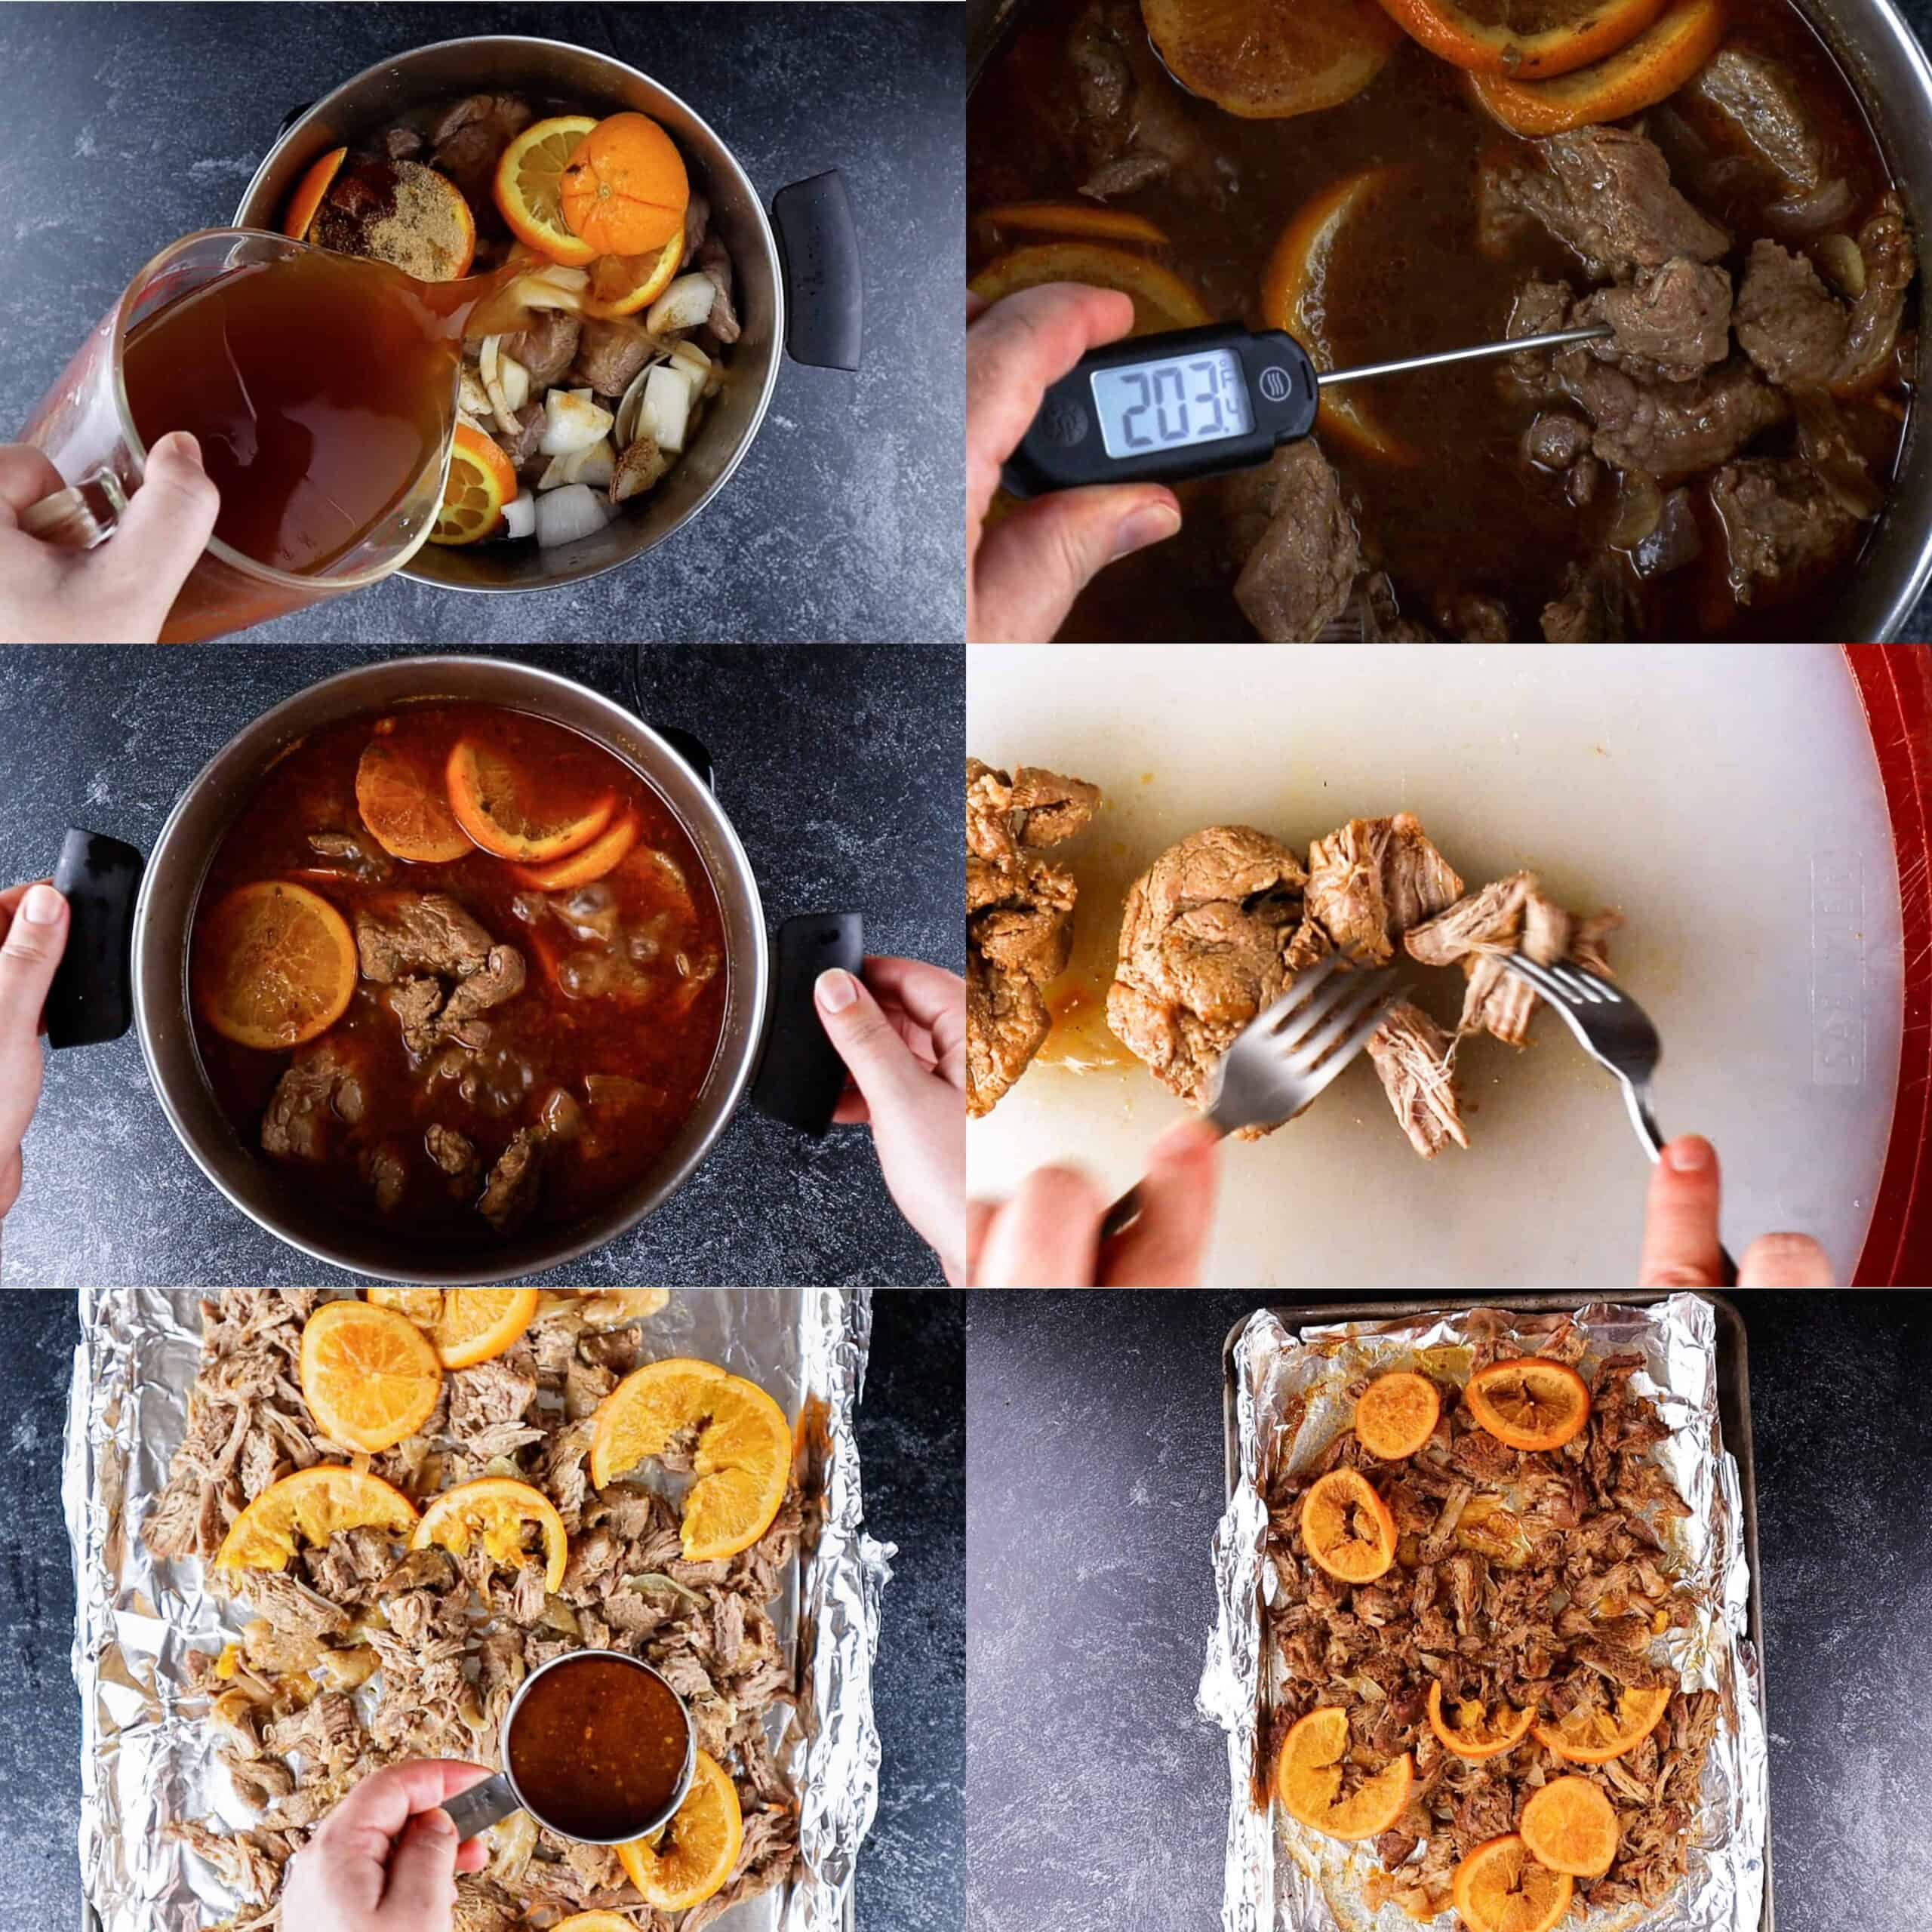 Adding broth, cooking, then baking